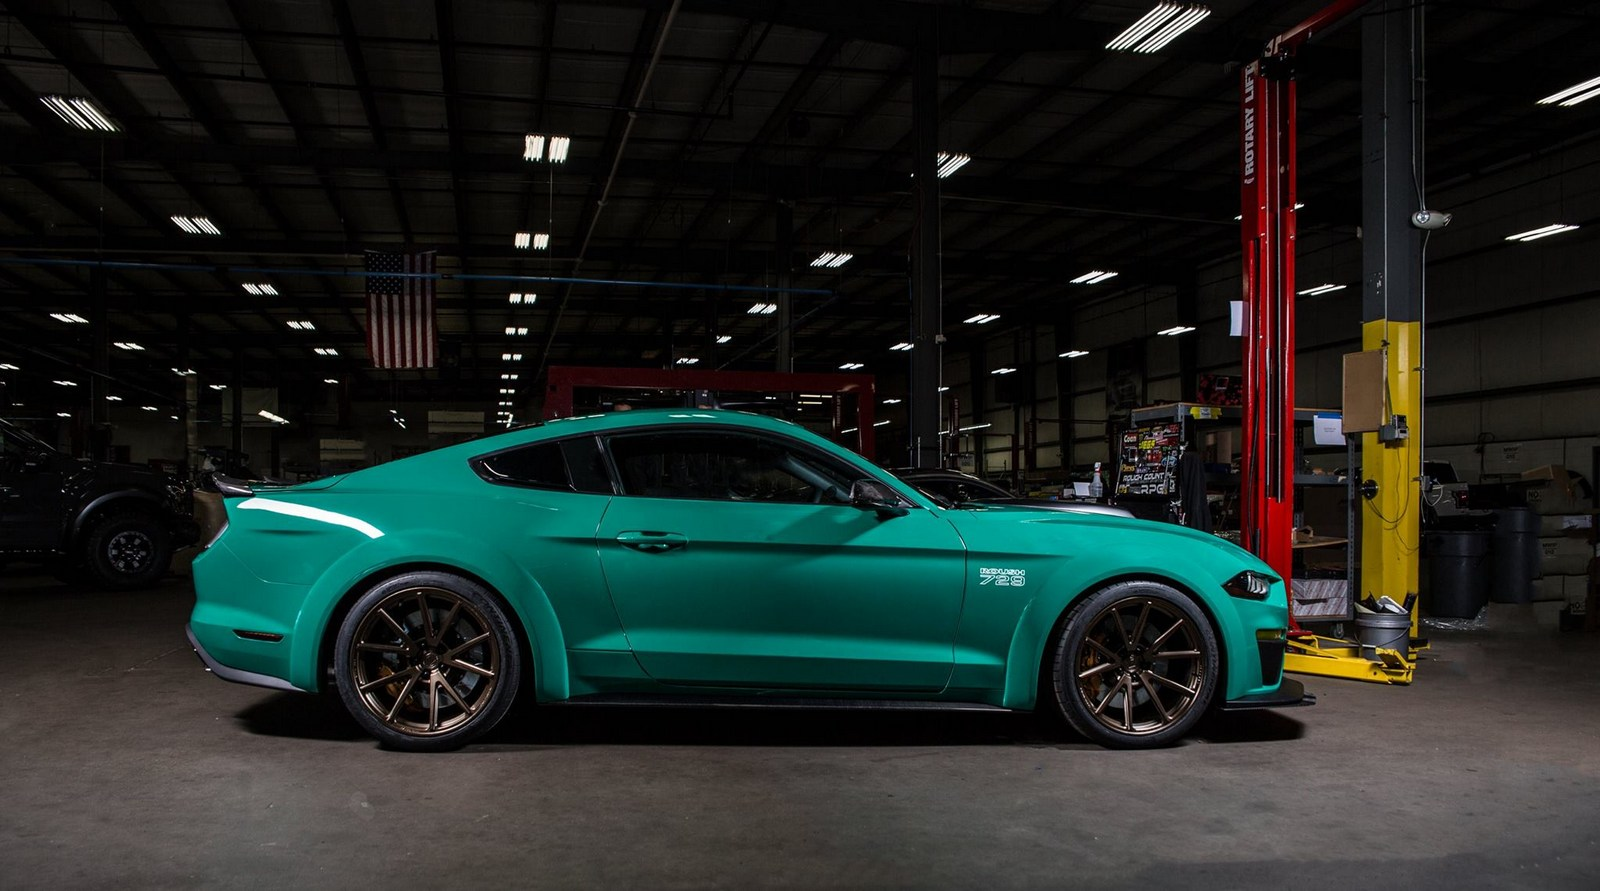 Roush 729 Mustang Has 3D Printed Components And More Than ...